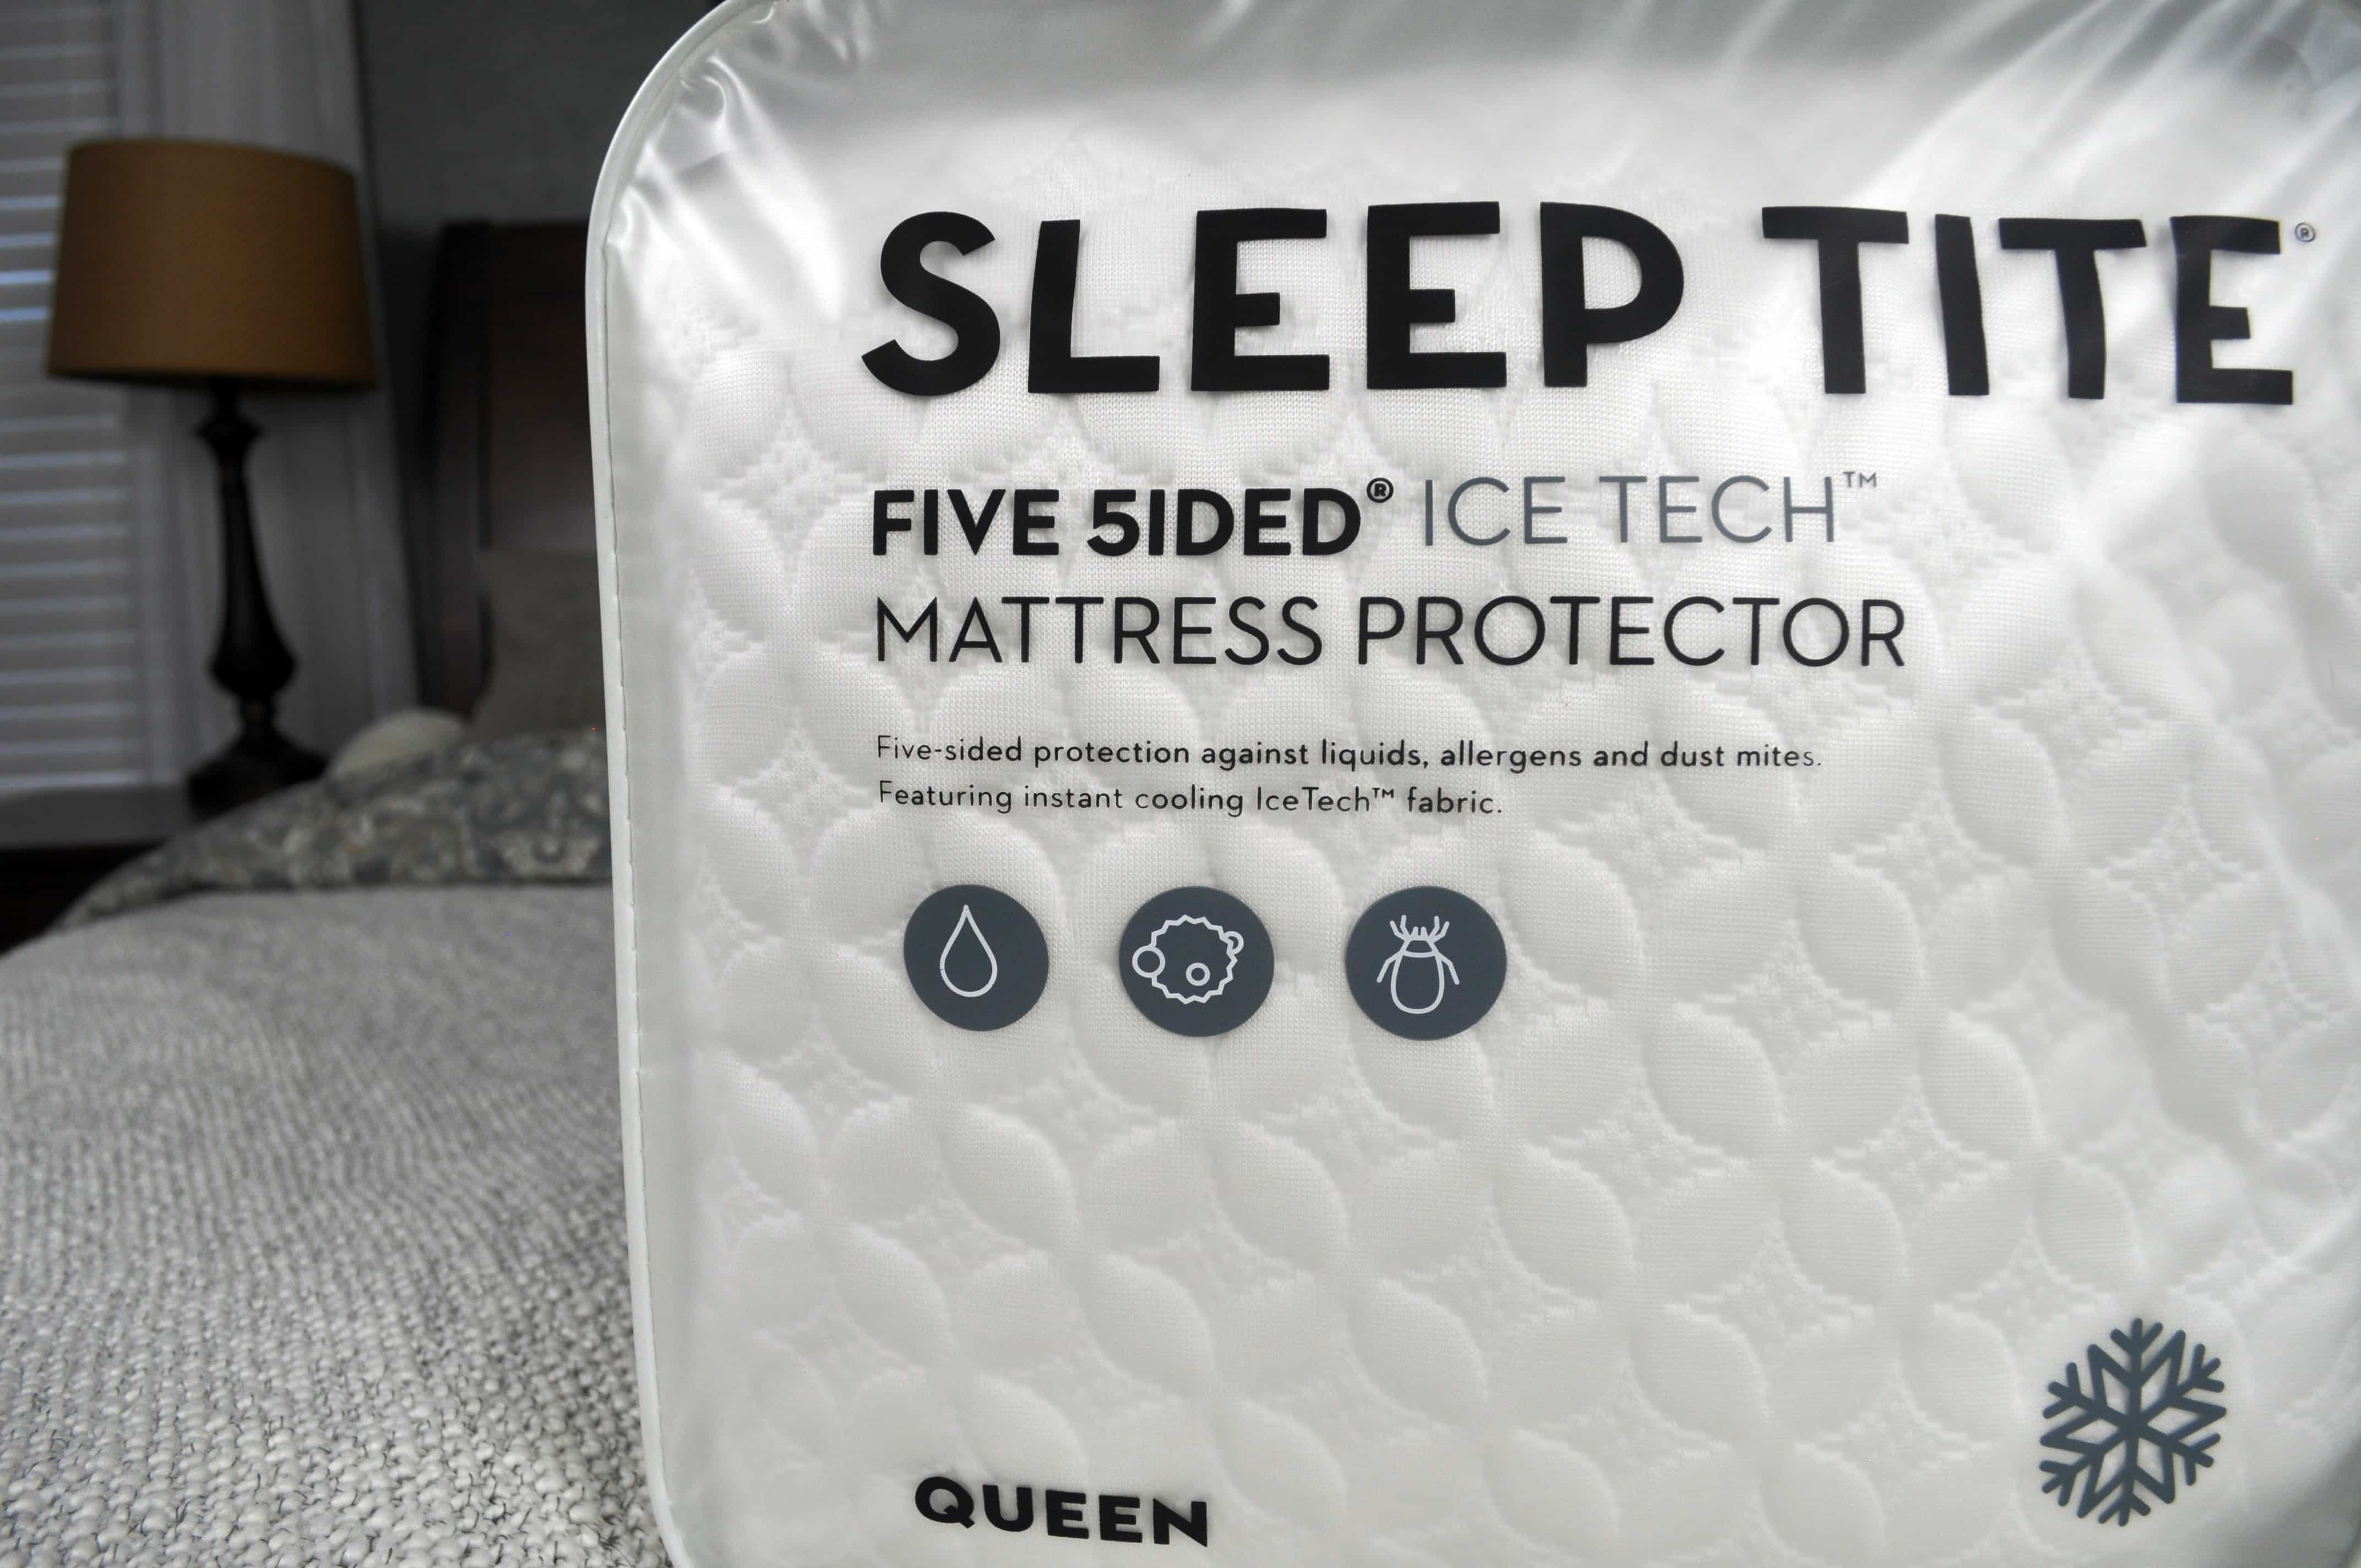 Malouf Sleep Tite Mattress Protector Malouf Sleep Tite Icetech Mattress Protector Review Sleepopolis